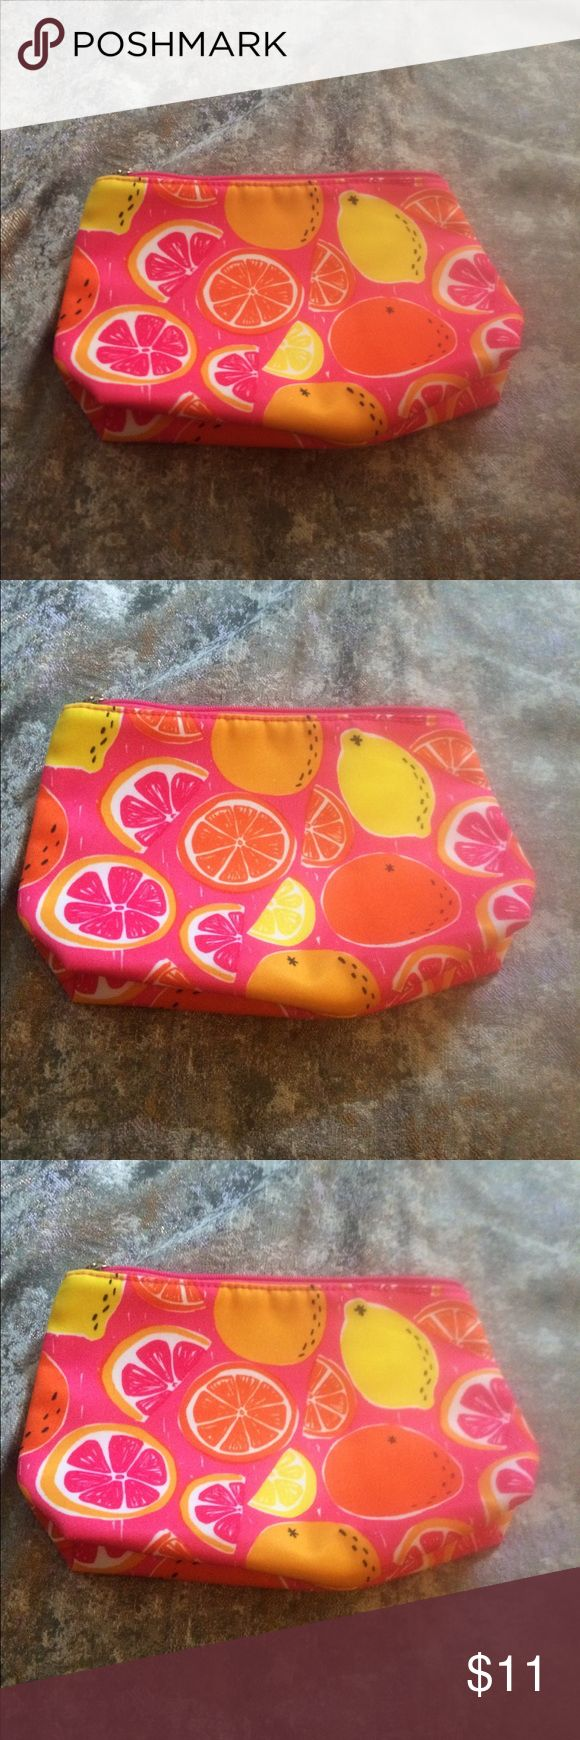 3/12 SALE💥🛍💸Clinique Citrus Cosmetic Bag NWT (With images